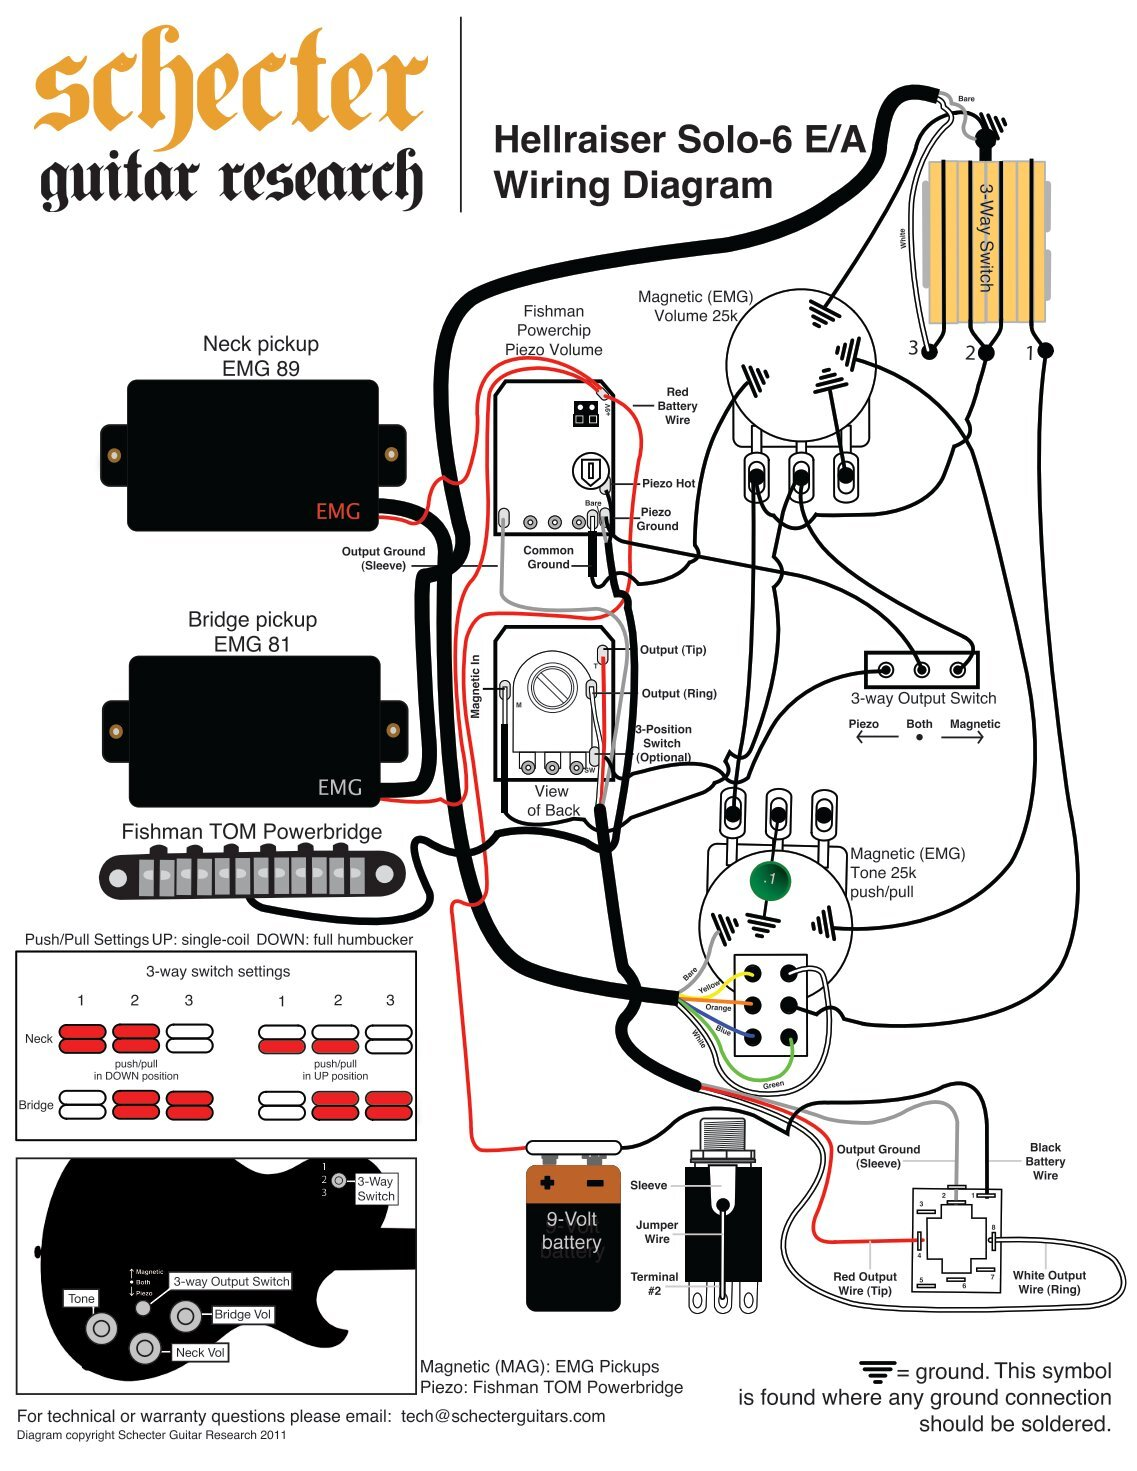 hellraiser solo 6 wiring diagram schecter guitars?resize\\\\\\\\\\\\\\\\\\\\\\\\\\\\\\\\\\\\\\\\\\\\\\\\\\\\\\\\\\\\\\\\\\\\\\\\\\\\\\\\\\\\\\\\\\\\\\\\\\\\\\\\\\\\\\\\\\\\\\\\\\\\\\\=665%2C860\\\\\\\\\\\\\\\\\\\\\\\\\\\\\\\\\\\\\\\\\\\\\\\\\\\\\\\\\\\\\\\\\\\\\\\\\\\\\\\\\\\\\\\\\\\\\\\\\\\\\\\\\\\\\\\\\\\\\\\\\\\\\\\&ssl\\\\\\\\\\\\\\\\\\\\\\\\\\\\\\\\\\\\\\\\\\\\\\\\\\\\\\\\\\\\\\\\\\\\\\\\\\\\\\\\\\\\\\\\\\\\\\\\\\\\\\\\\\\\\\\\\\\\\\\\\\\\\\\=1 outstanding zakk wylde emg wiring diagram pictures wiring emg wiring schematics at fashall.co